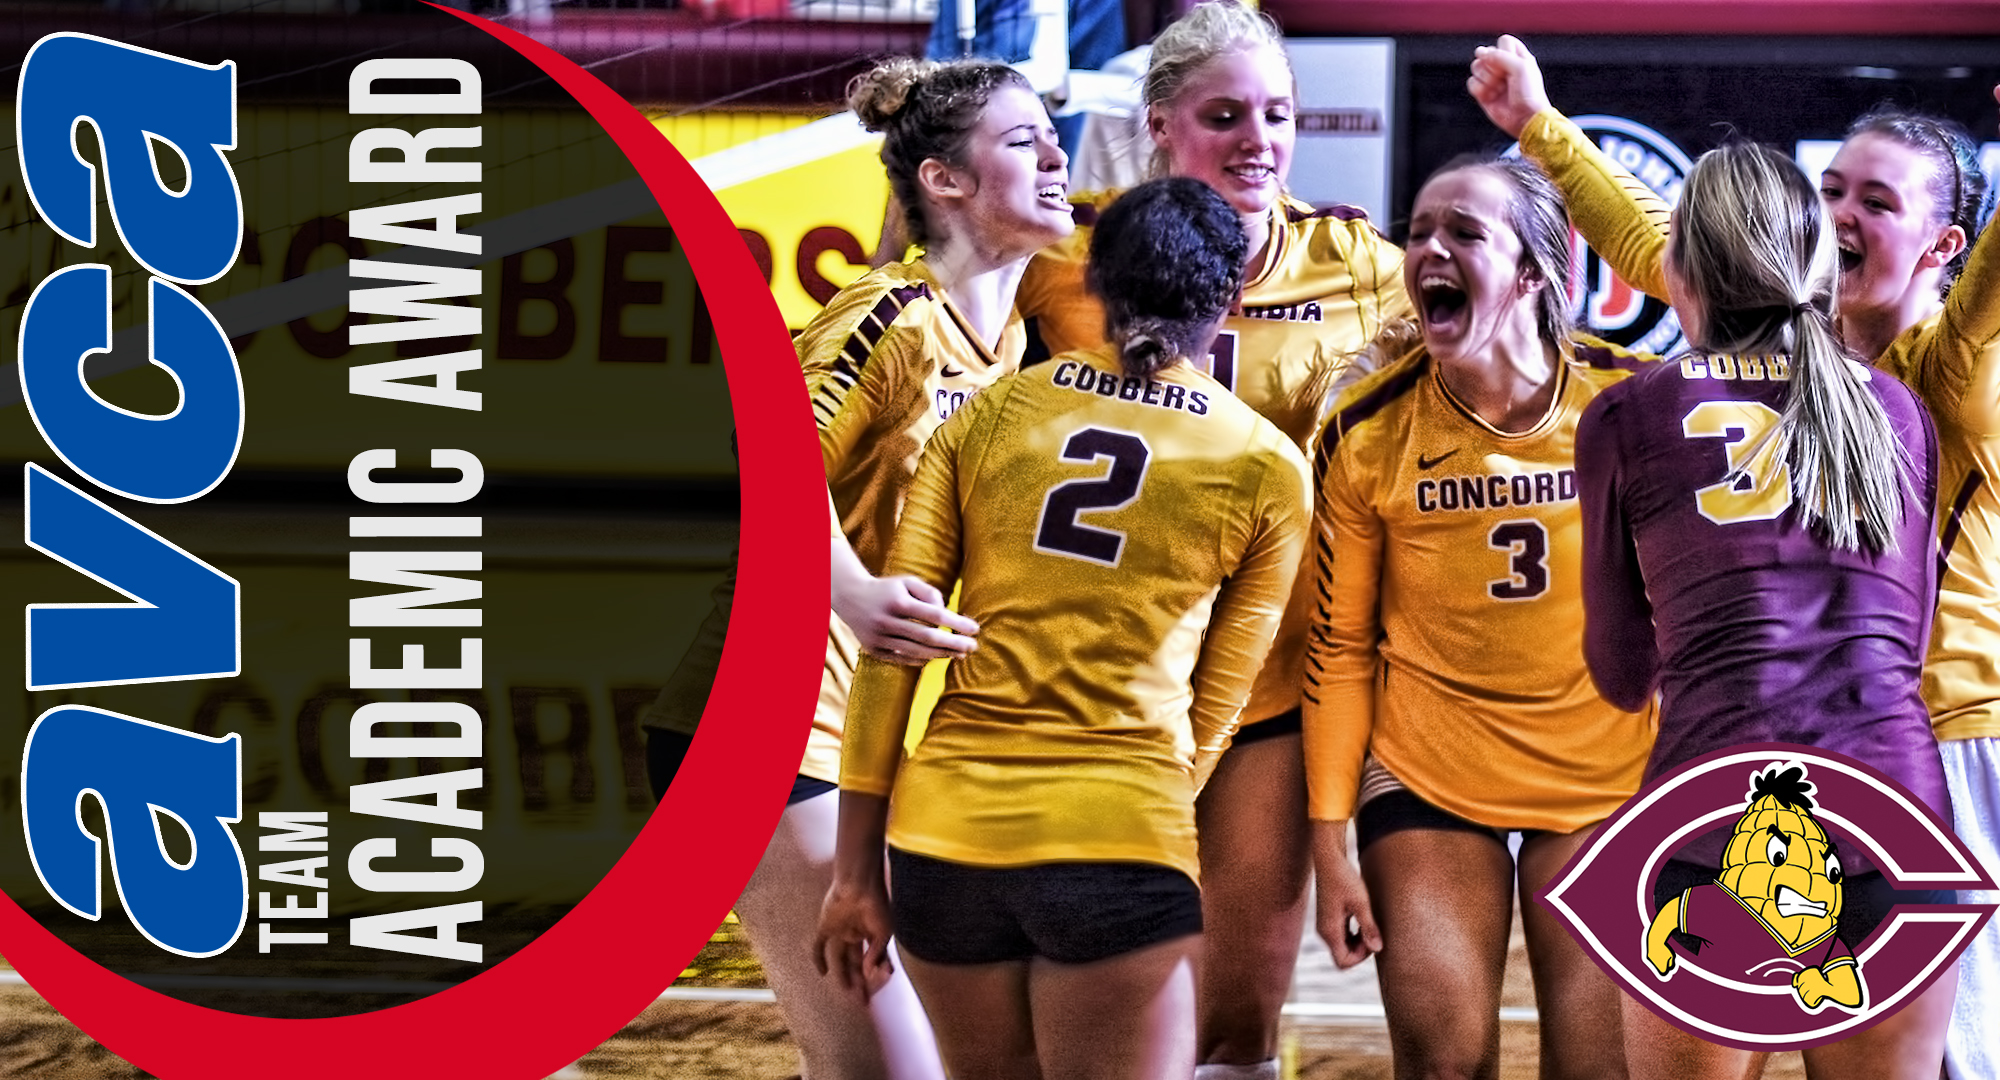 Concordia earned USMC/AVCA Team Academic honors for the first time in program history.